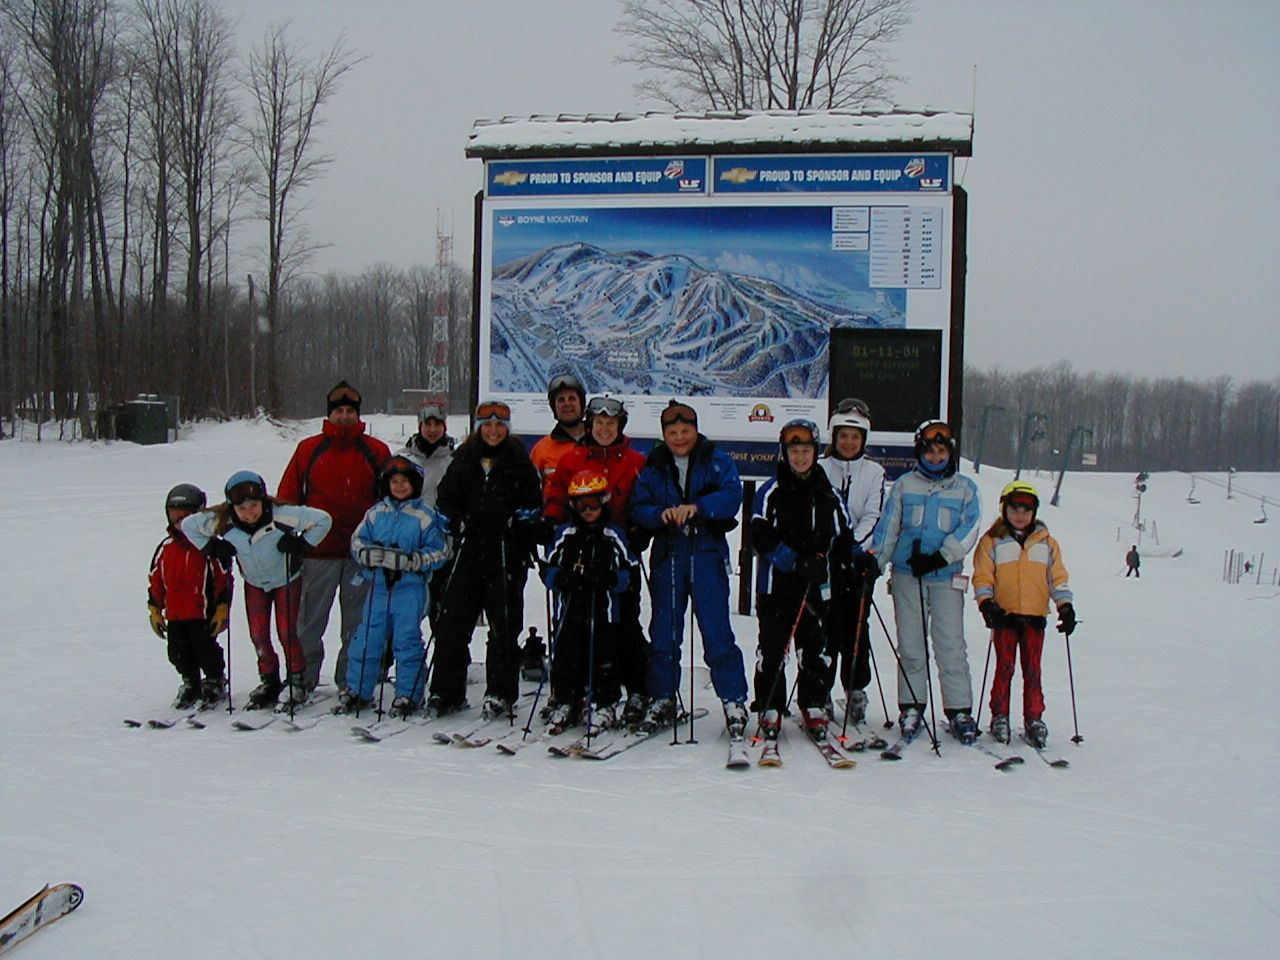 Nichols Family Ski Weekend at Boyne Mountain - Jan 2004